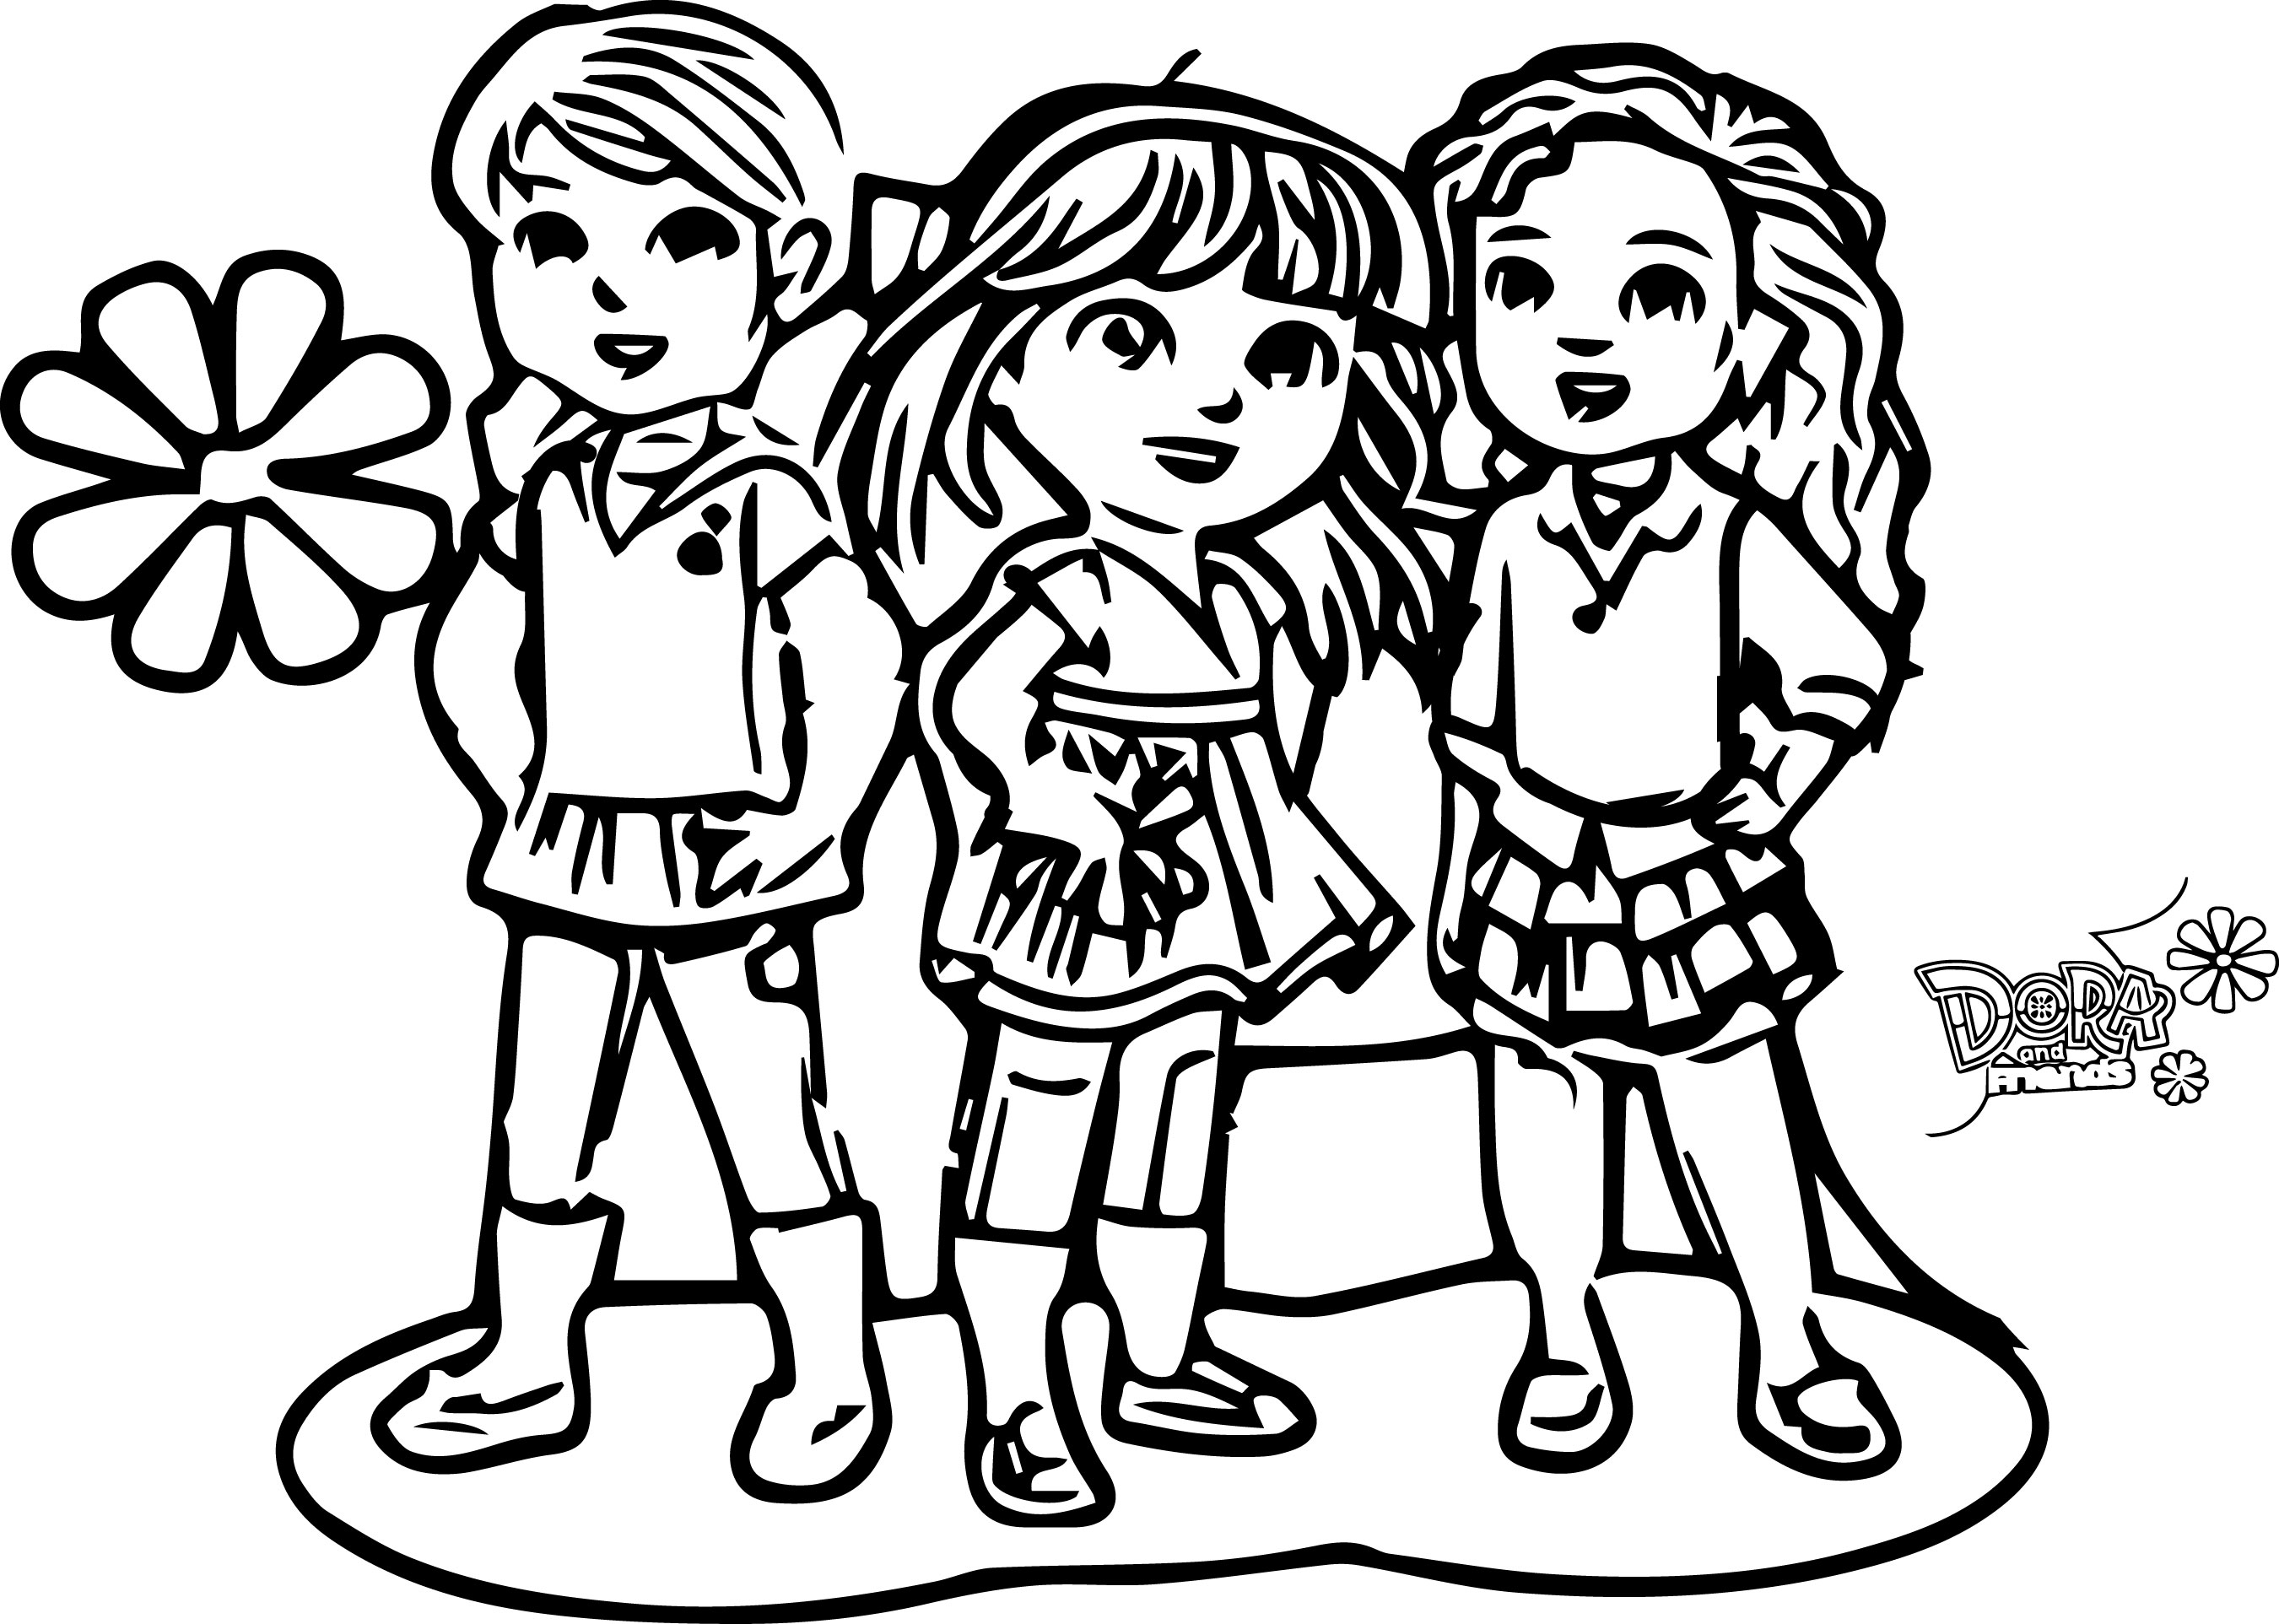 2701x1925 Dora And Friends Coloring Pages Inside Glum Me Bloodbrothers